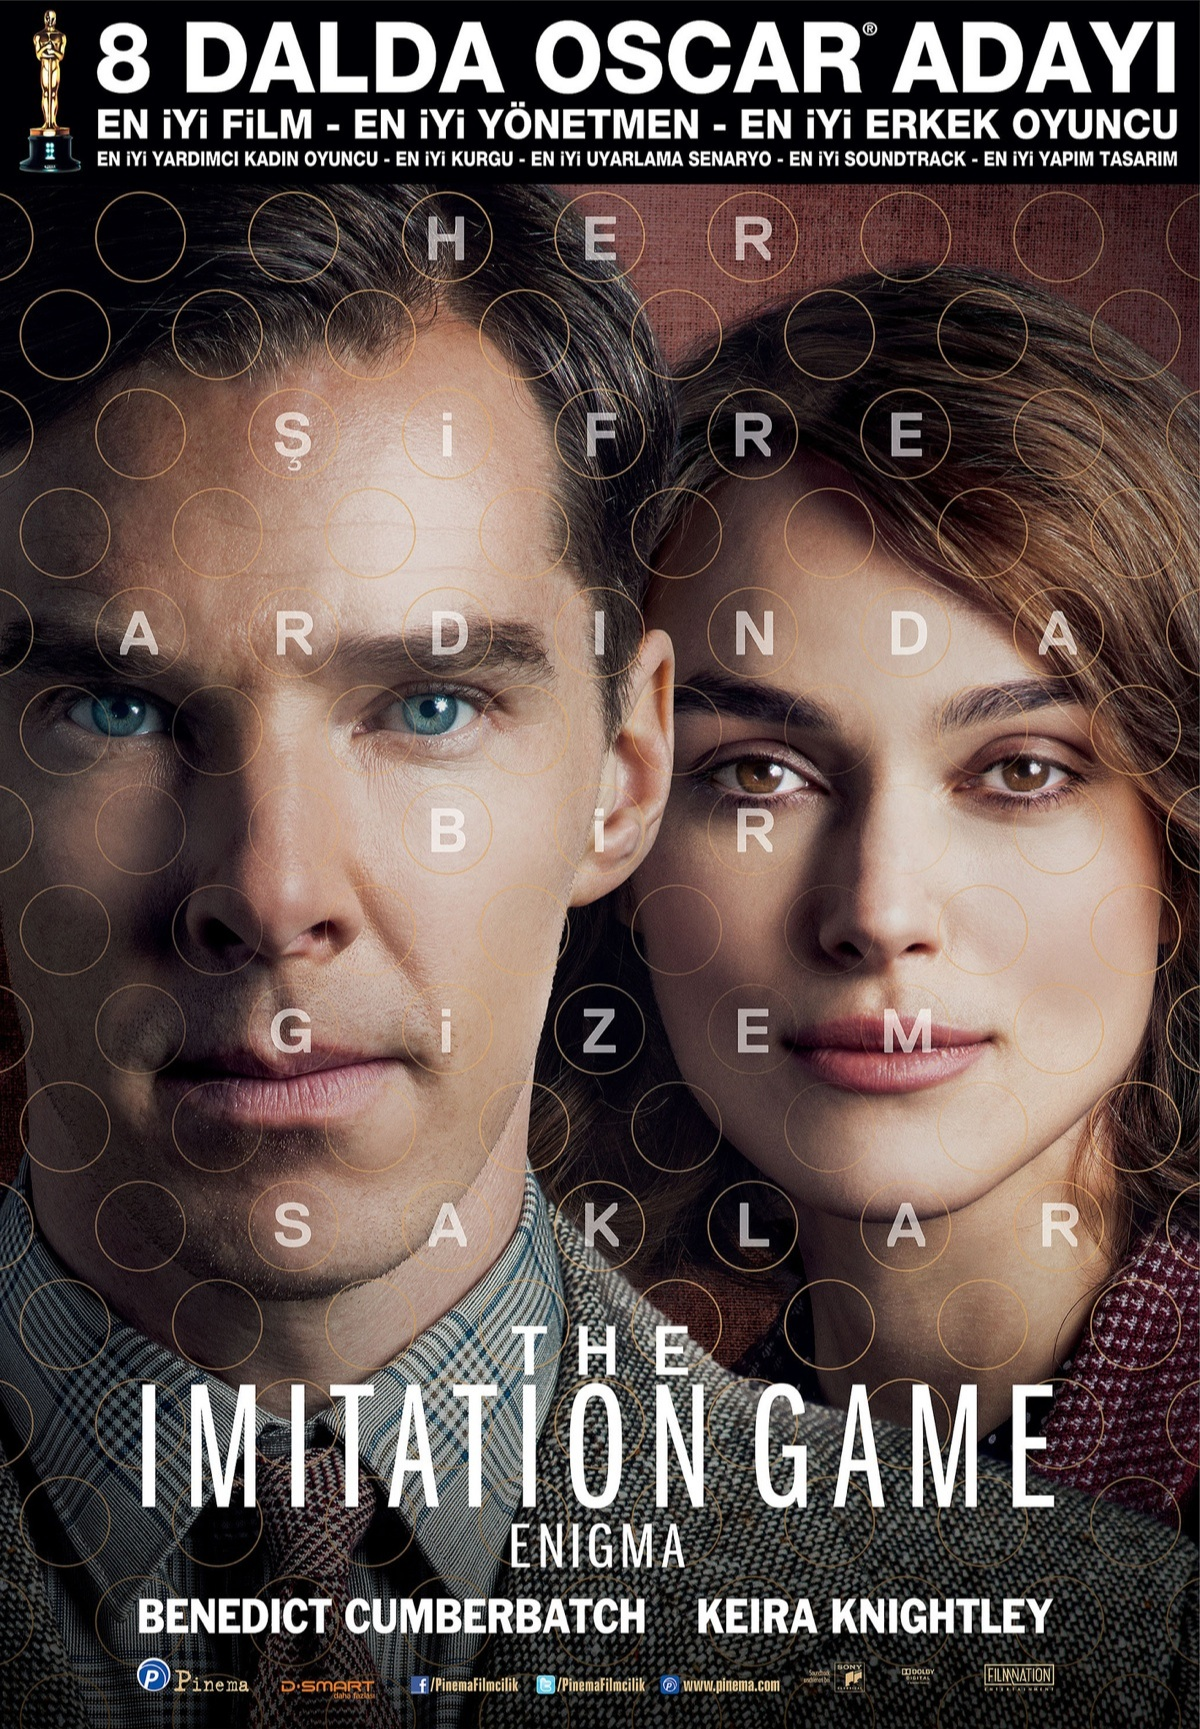 The Imitation Game: Enigma - film 2014 - Beyazperde.com